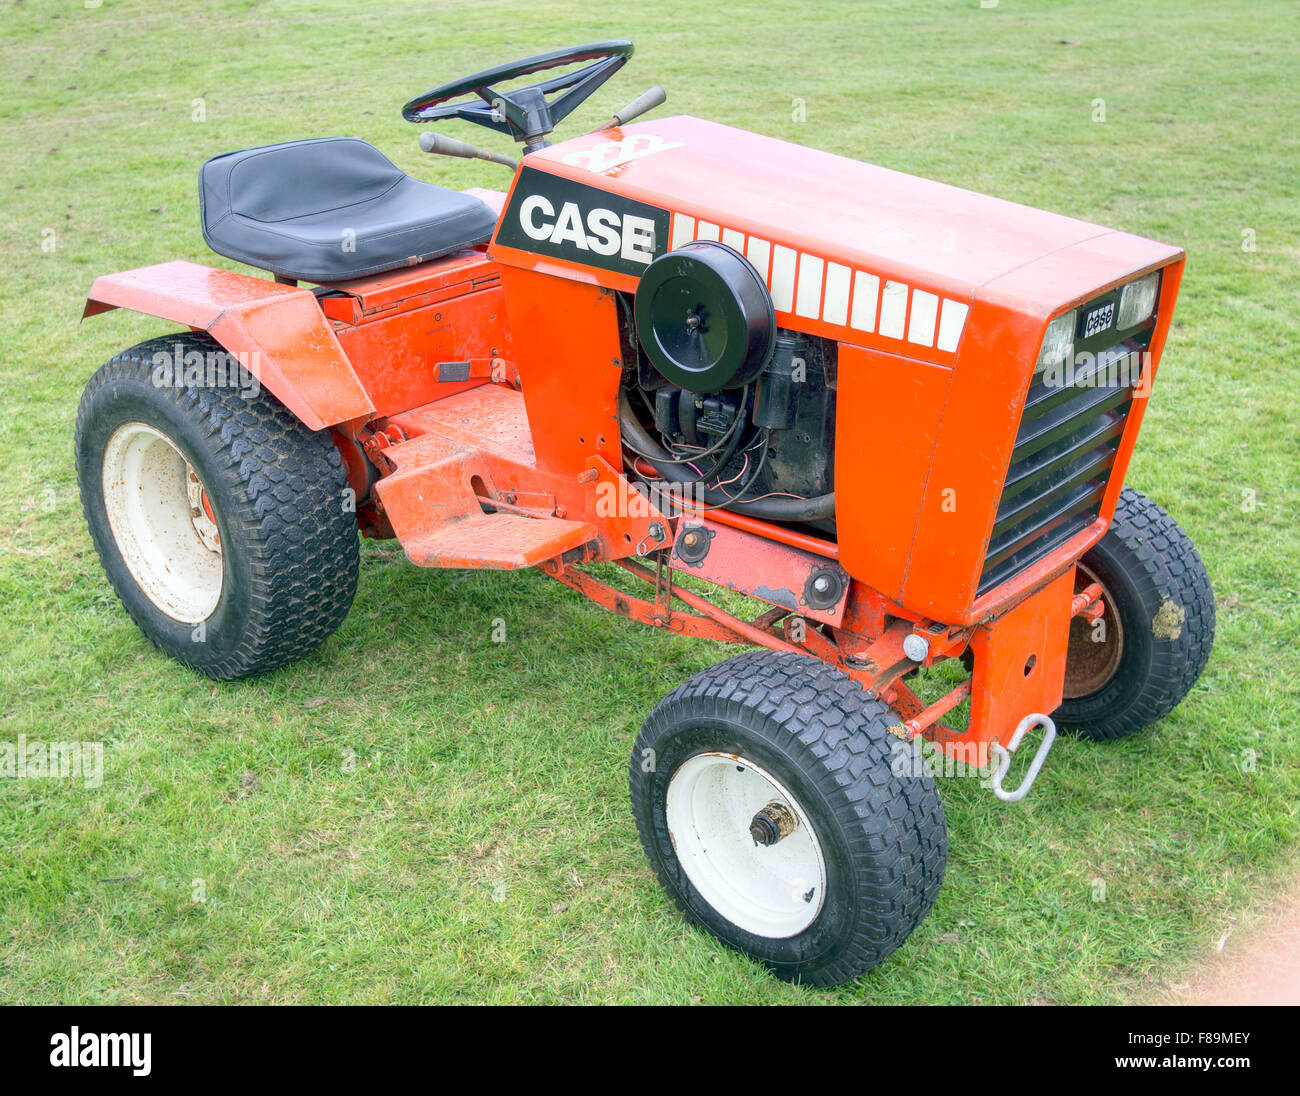 Ji Case 222 Garden Tractor Outdoors Vintage1969 1988 200